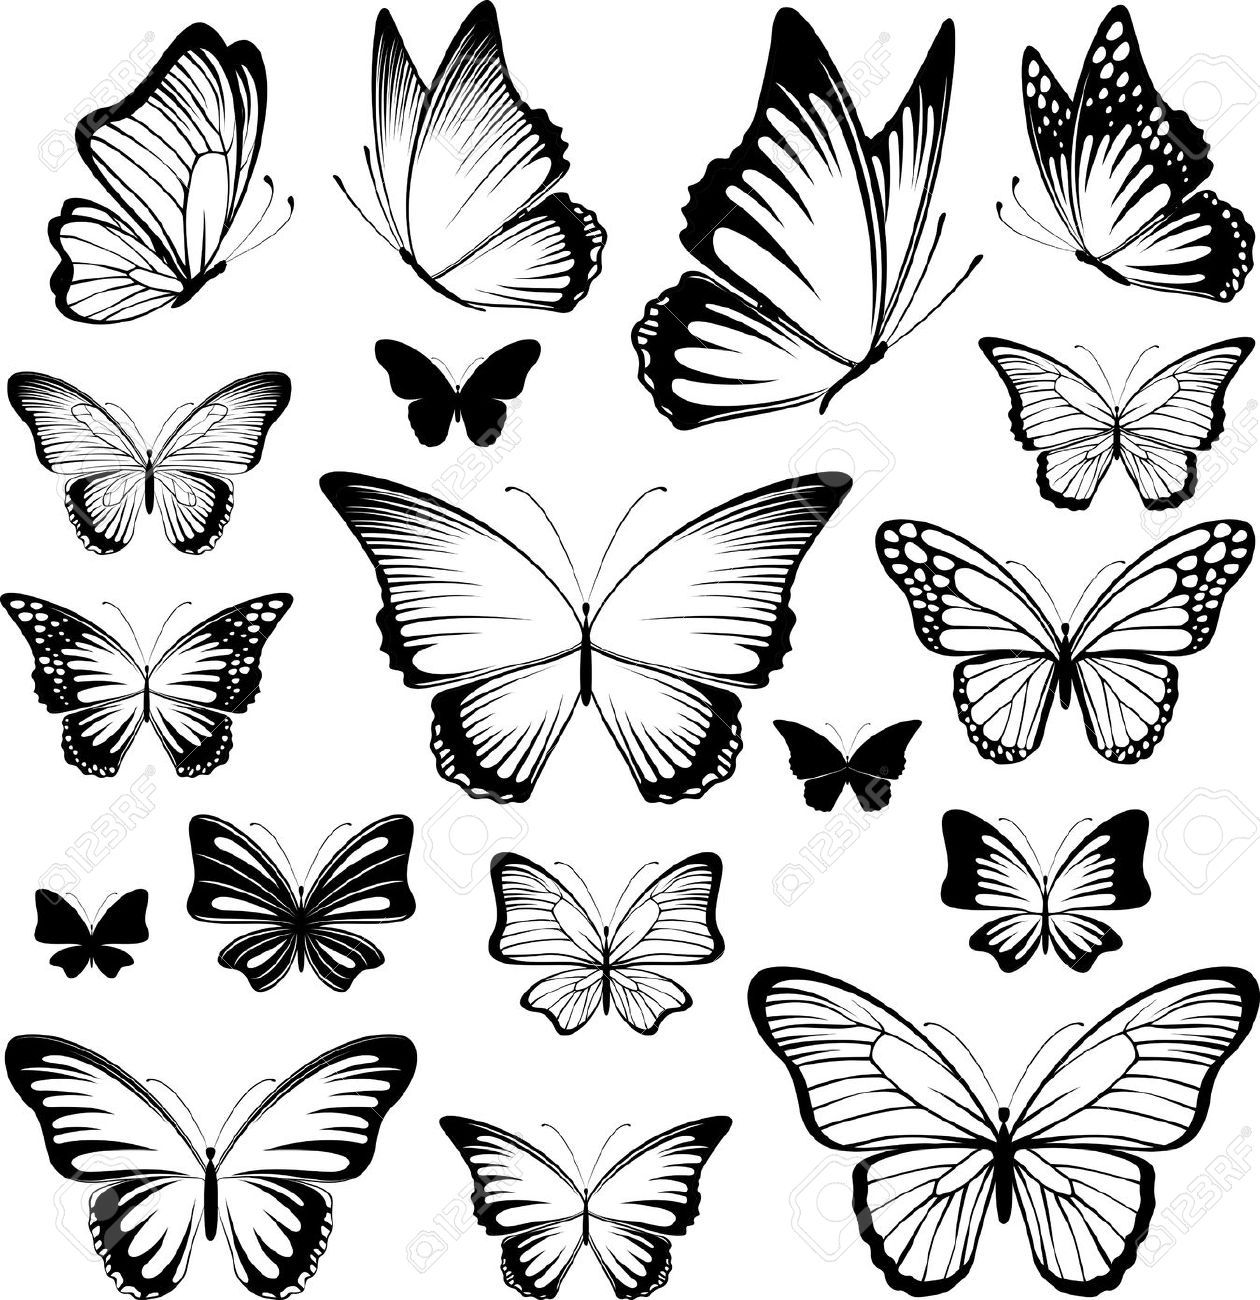 schmetterling tattoo bedeutung sch n und sinnvoll tattoo tatoo and butterfly. Black Bedroom Furniture Sets. Home Design Ideas